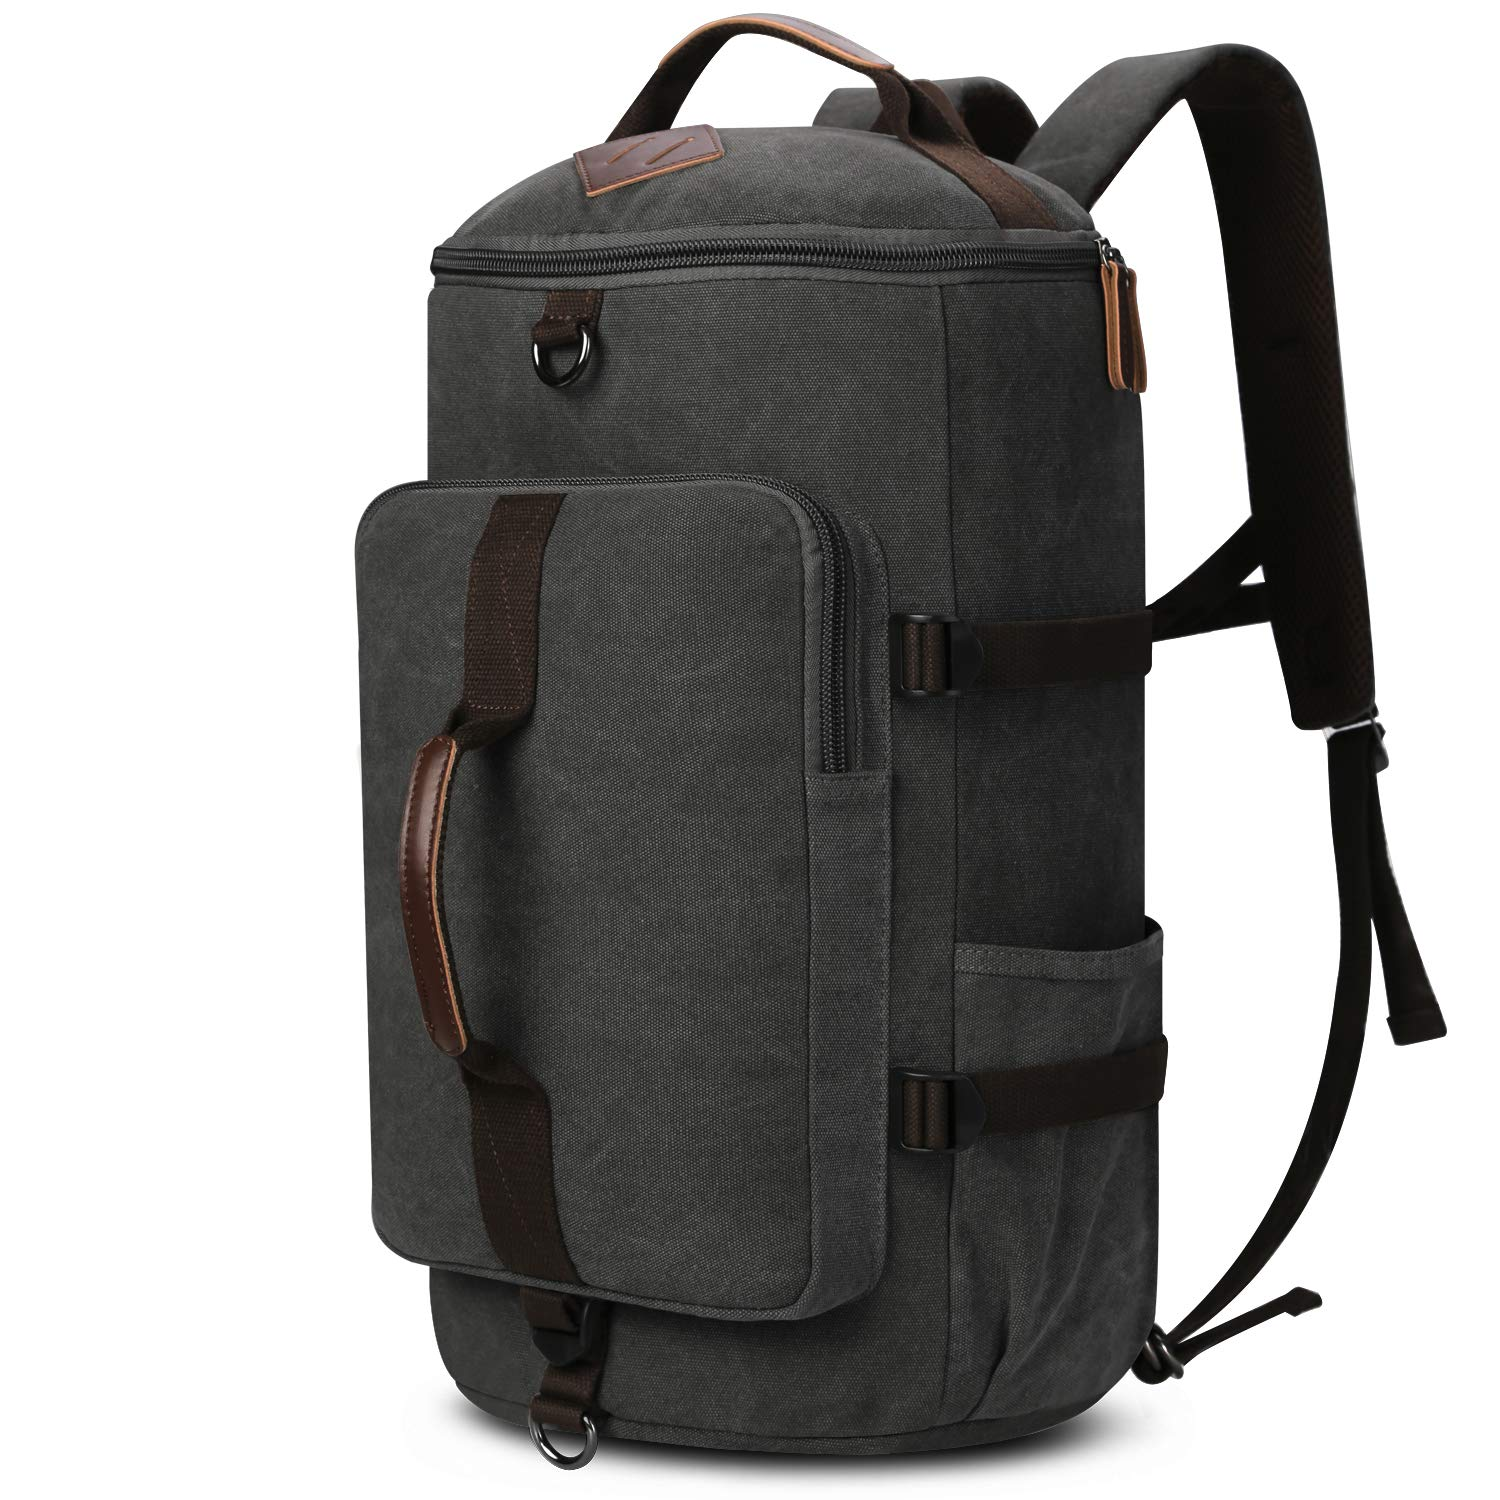 duffle backpack, Yousu Mens Large Canvas